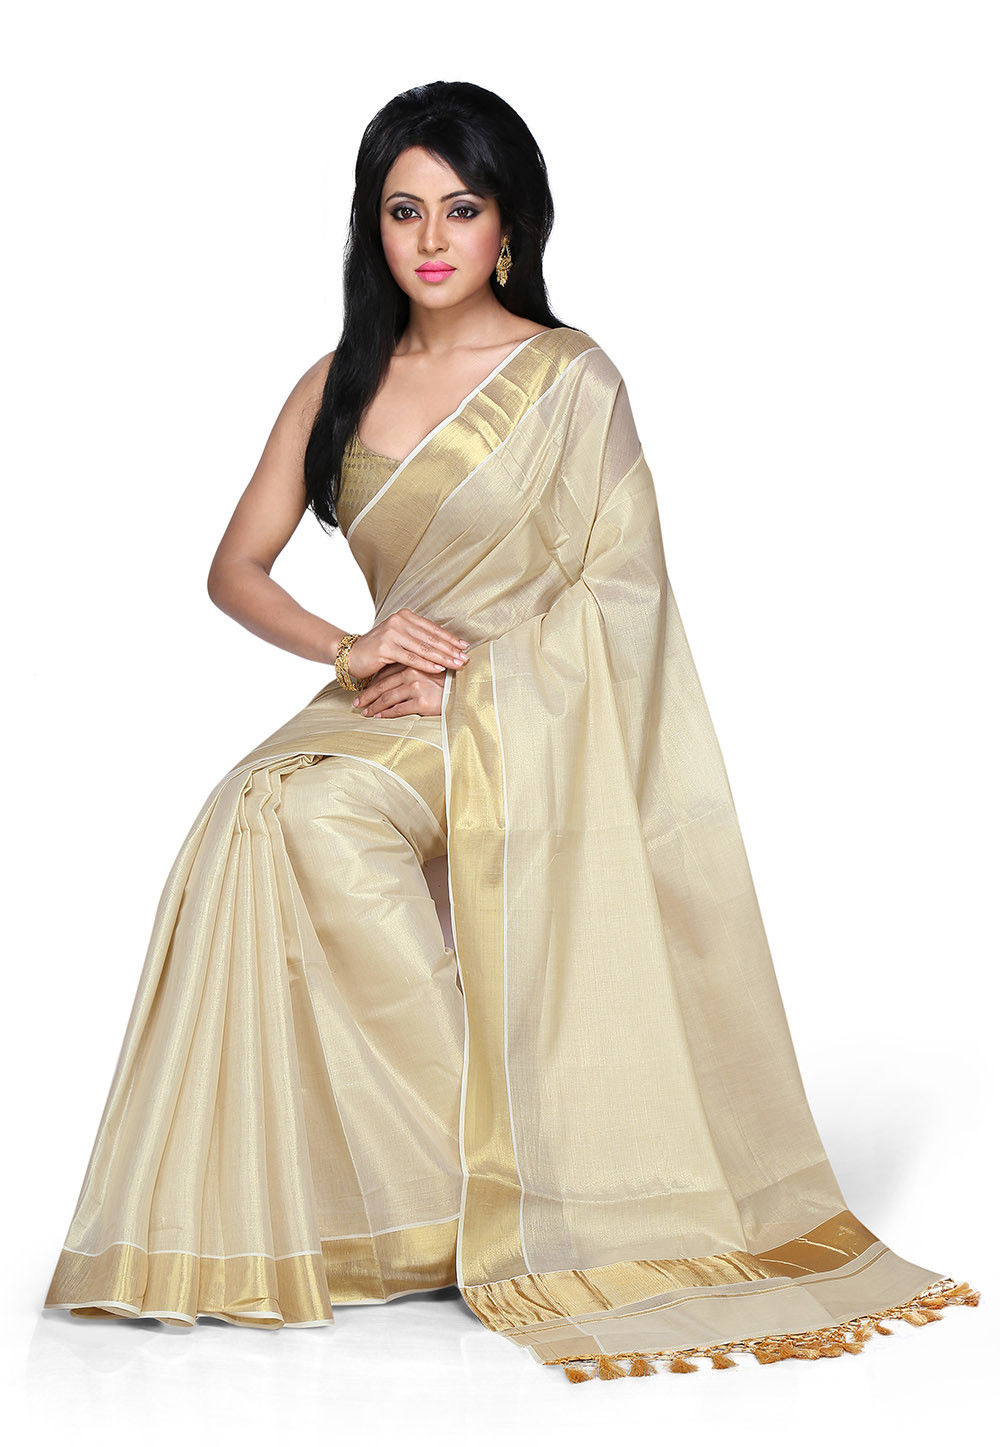 India Online Internet Use In India And The Development Of: Pure Kerala Kasavu Cotton Saree In Cream : SPN2299